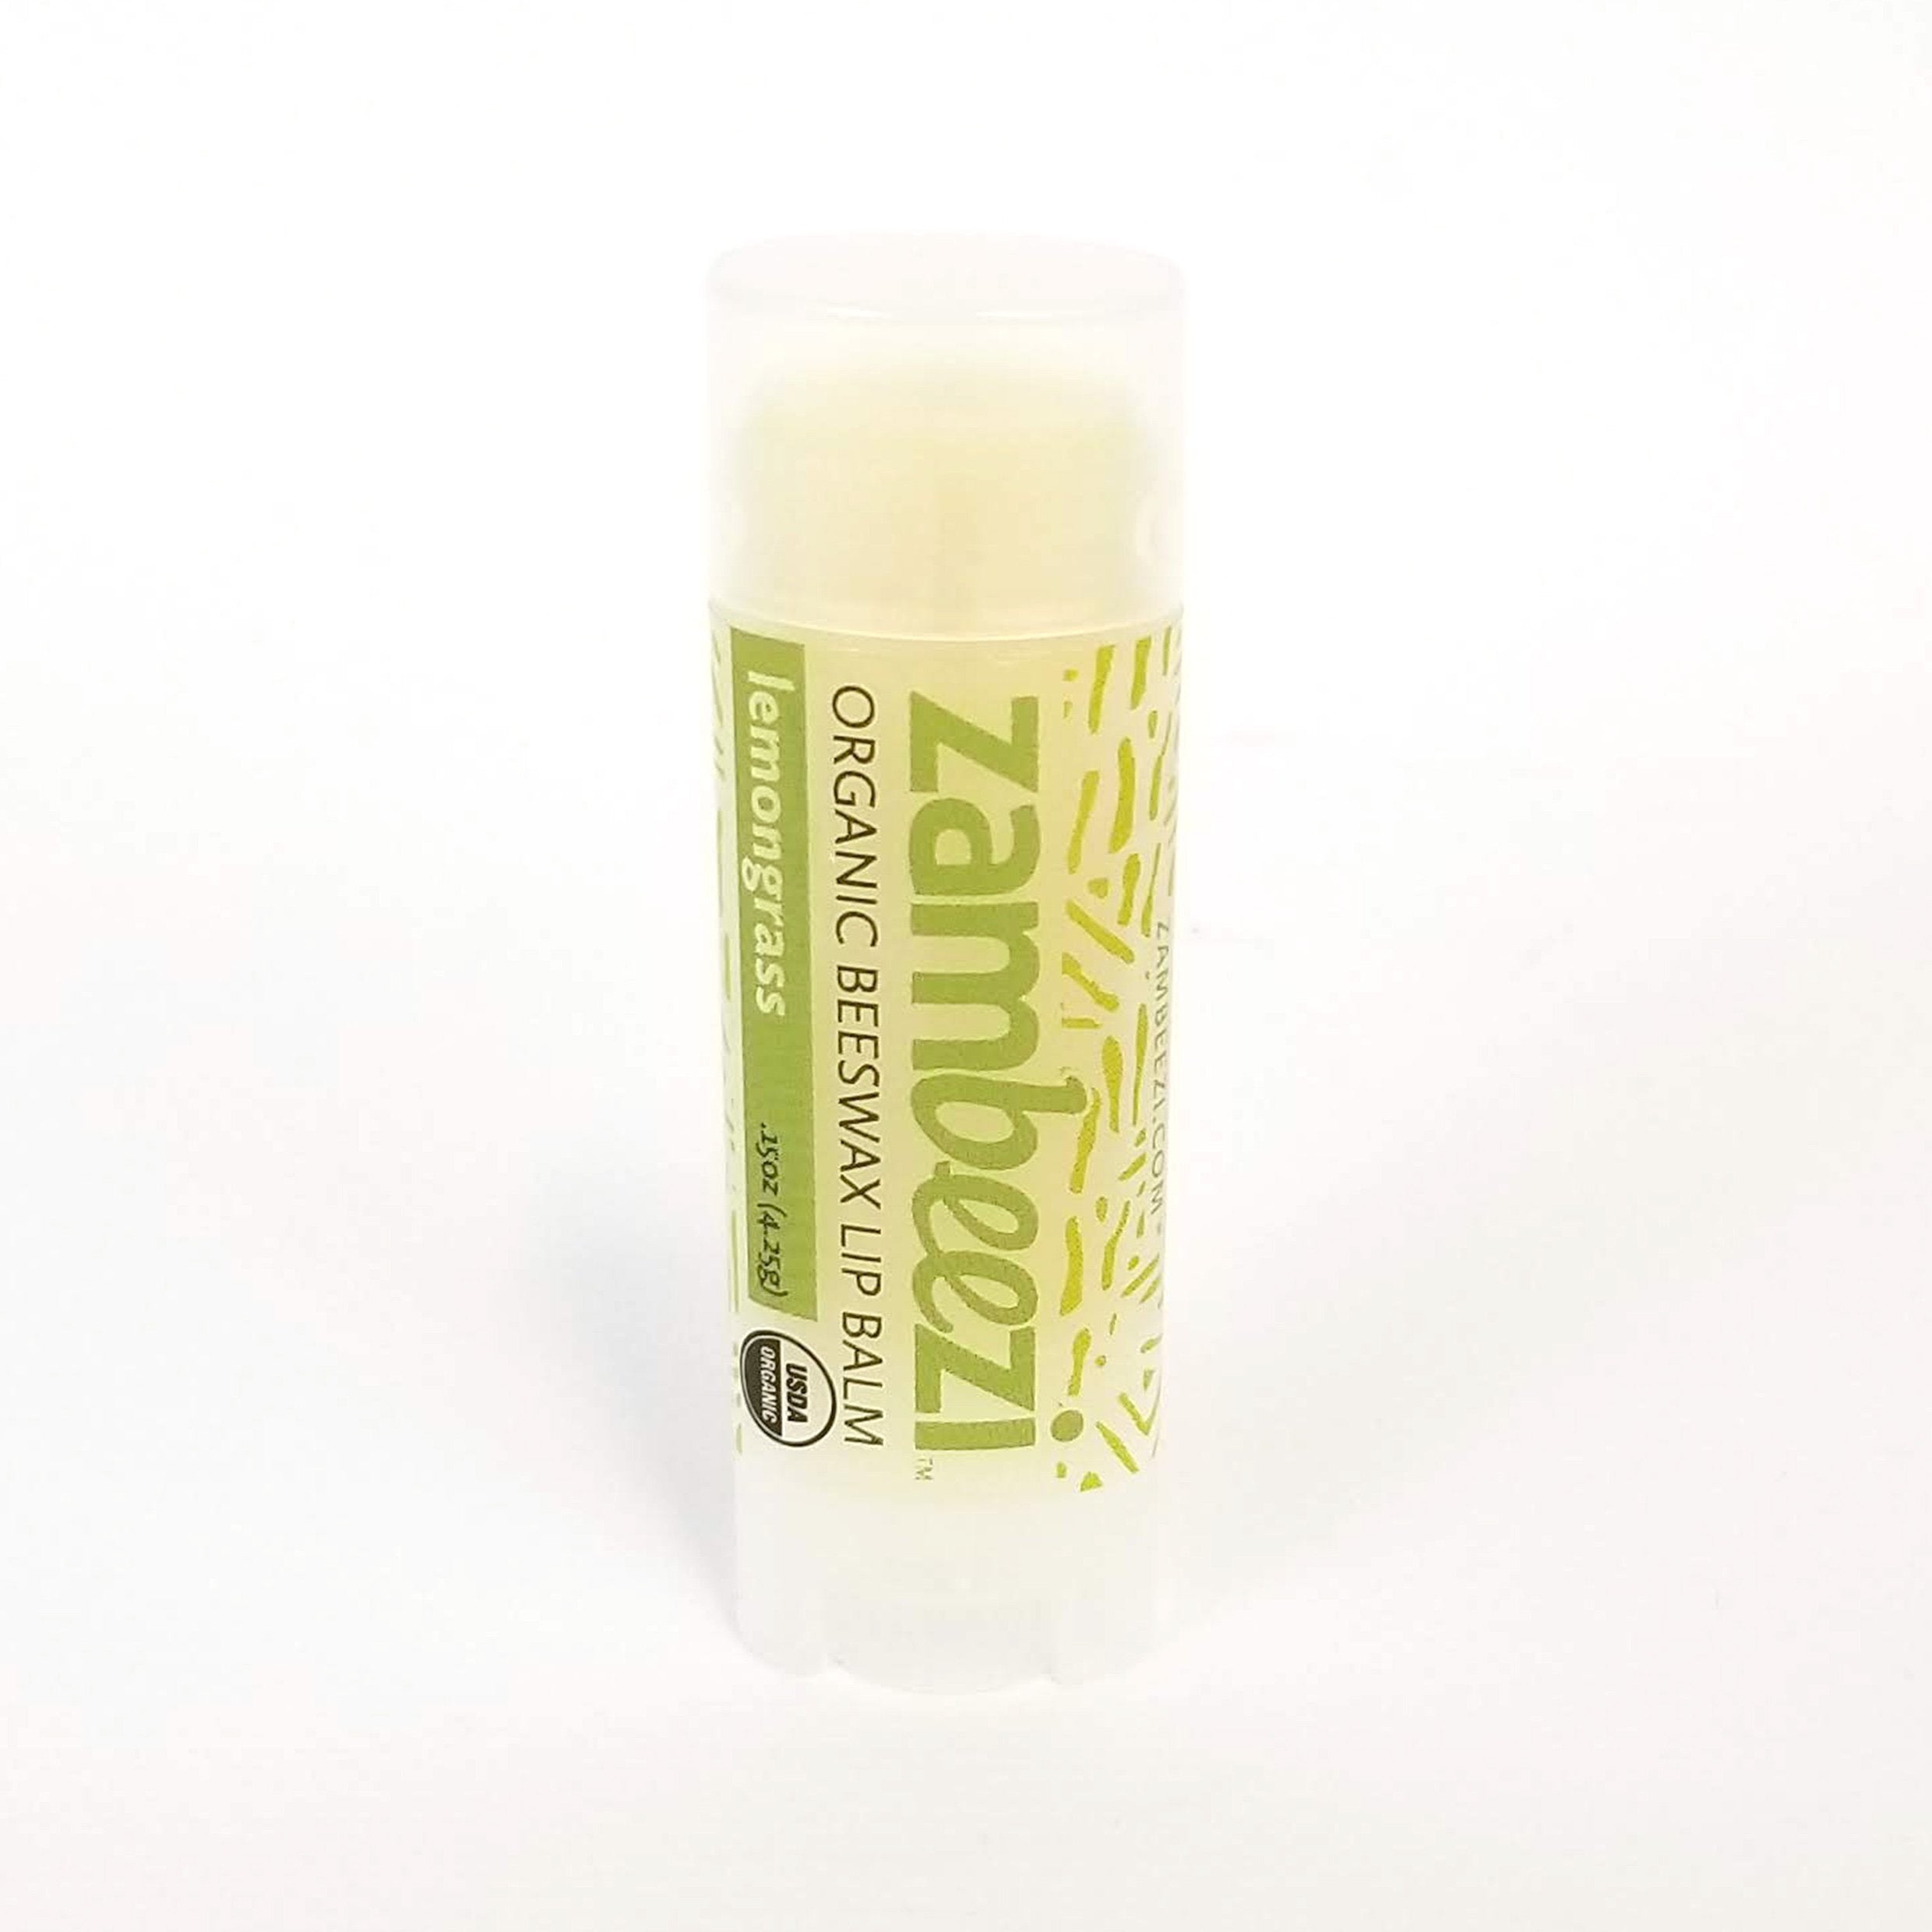 Organic Lip Balm - Lemongrass